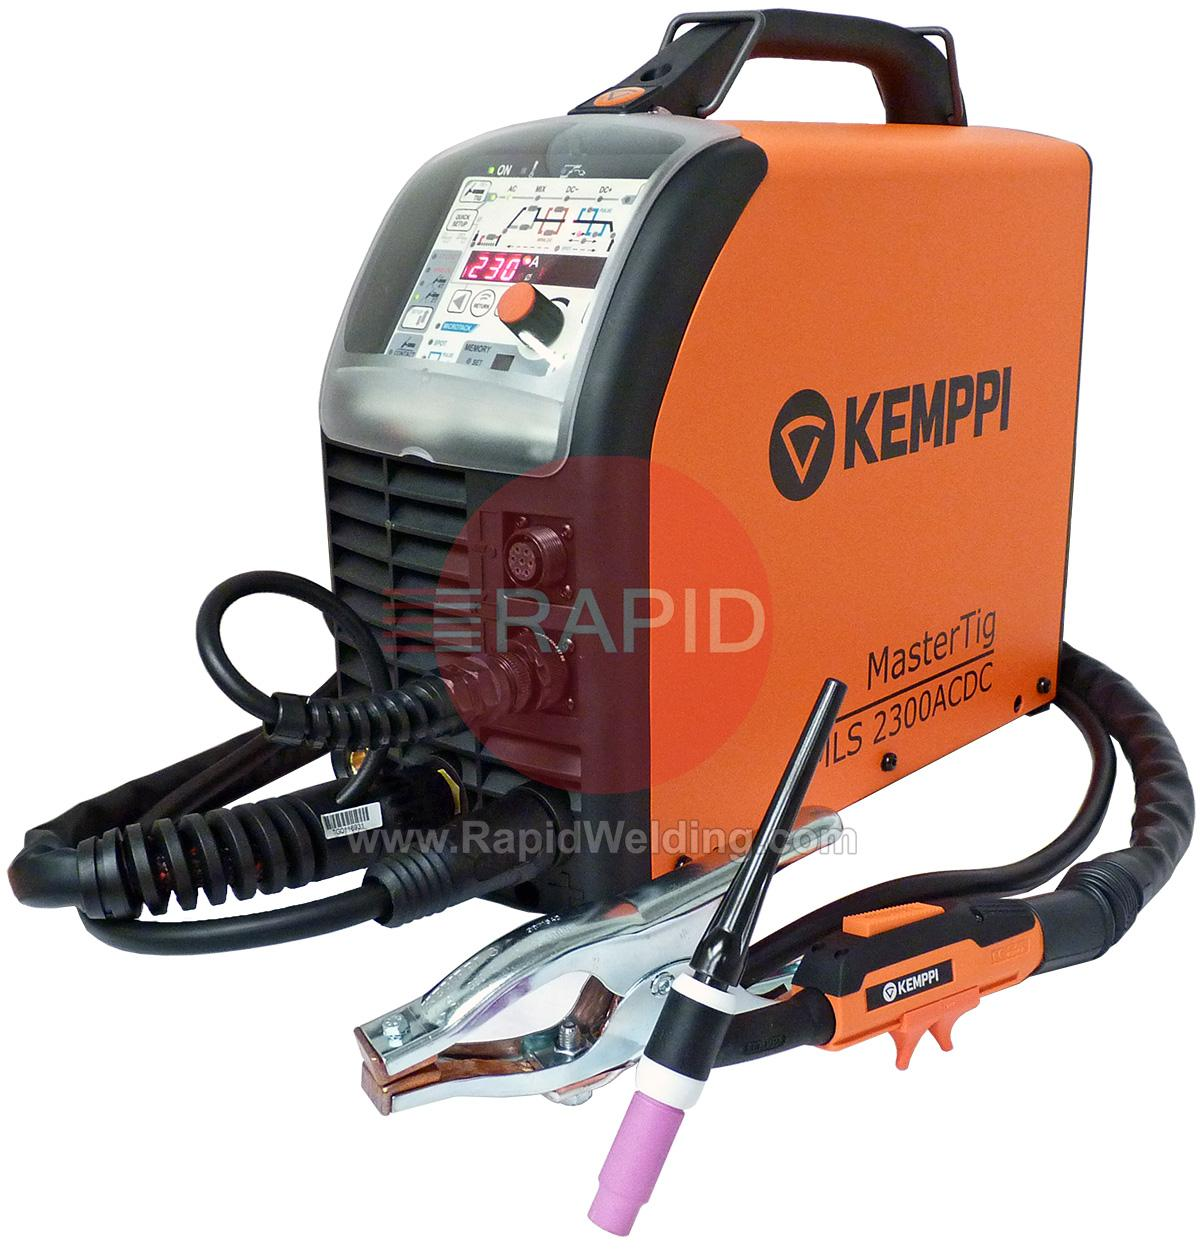 6162300ACX Kemppi MasterTig MLS 2300 ACX AC/DC Ready to Weld Tig Welder  Package.